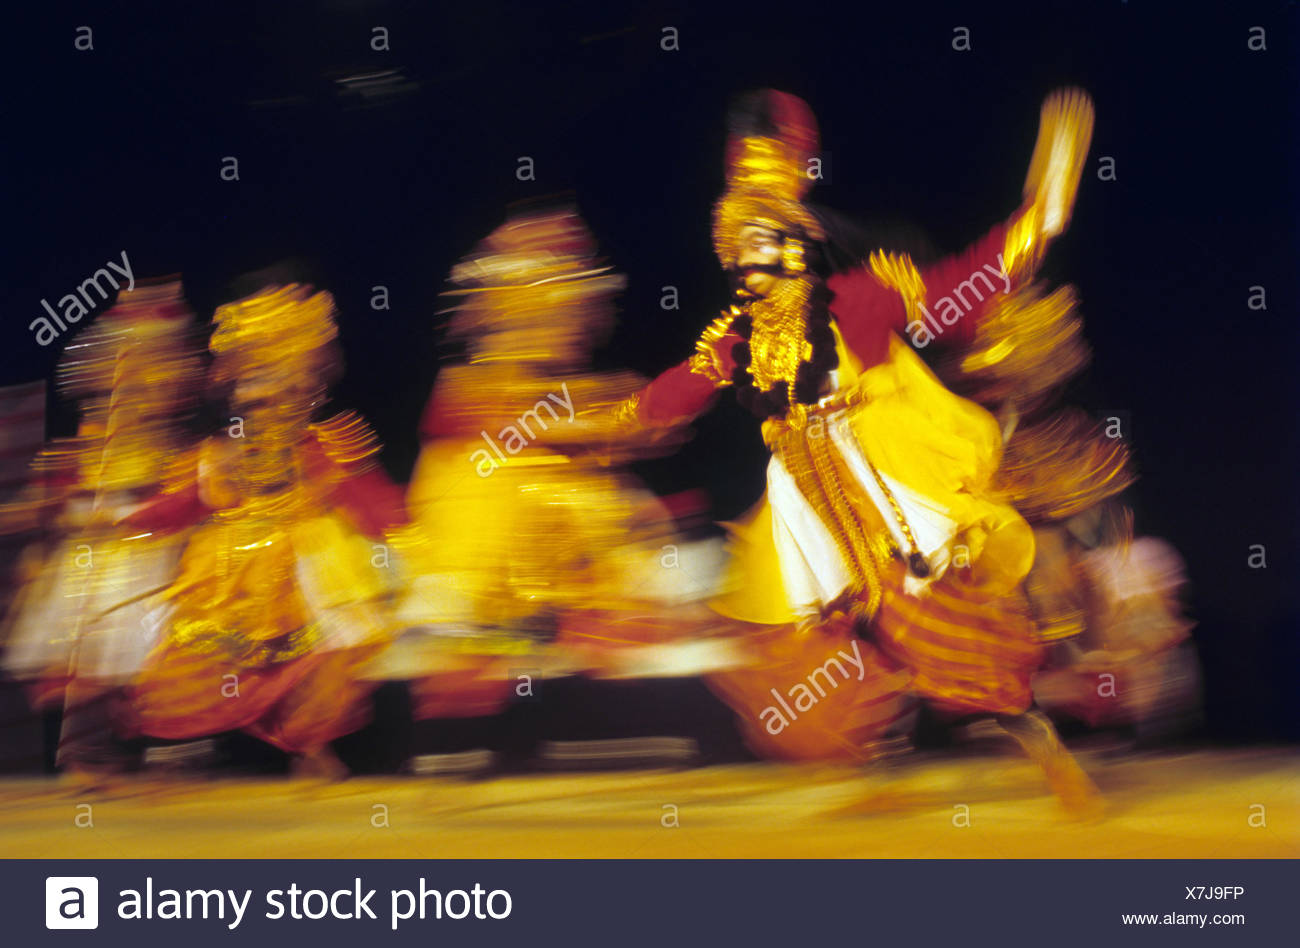 Artistes performing - Stock Image